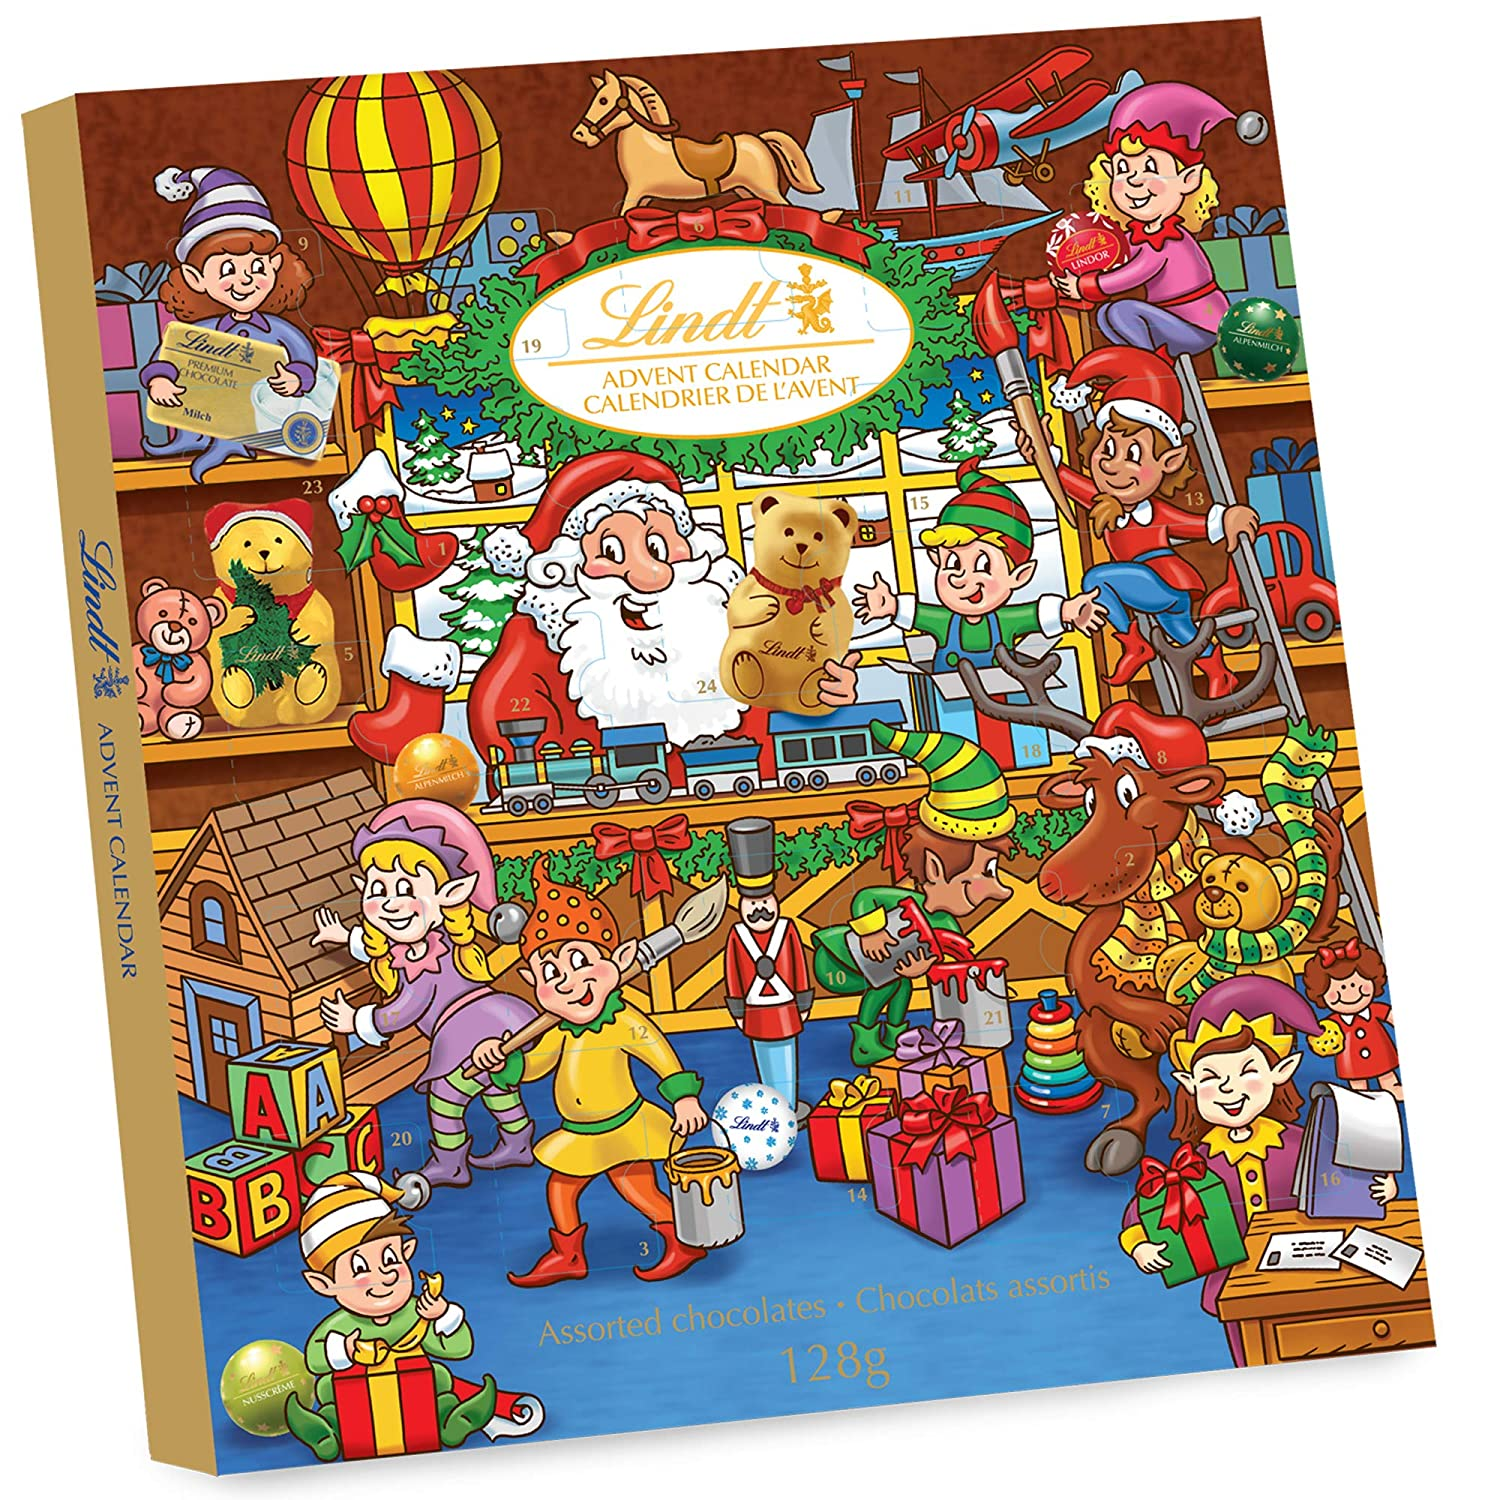 Lindt Christmas Advent Calendar Assorted Chocolates Gift Box, 128g Germany B61